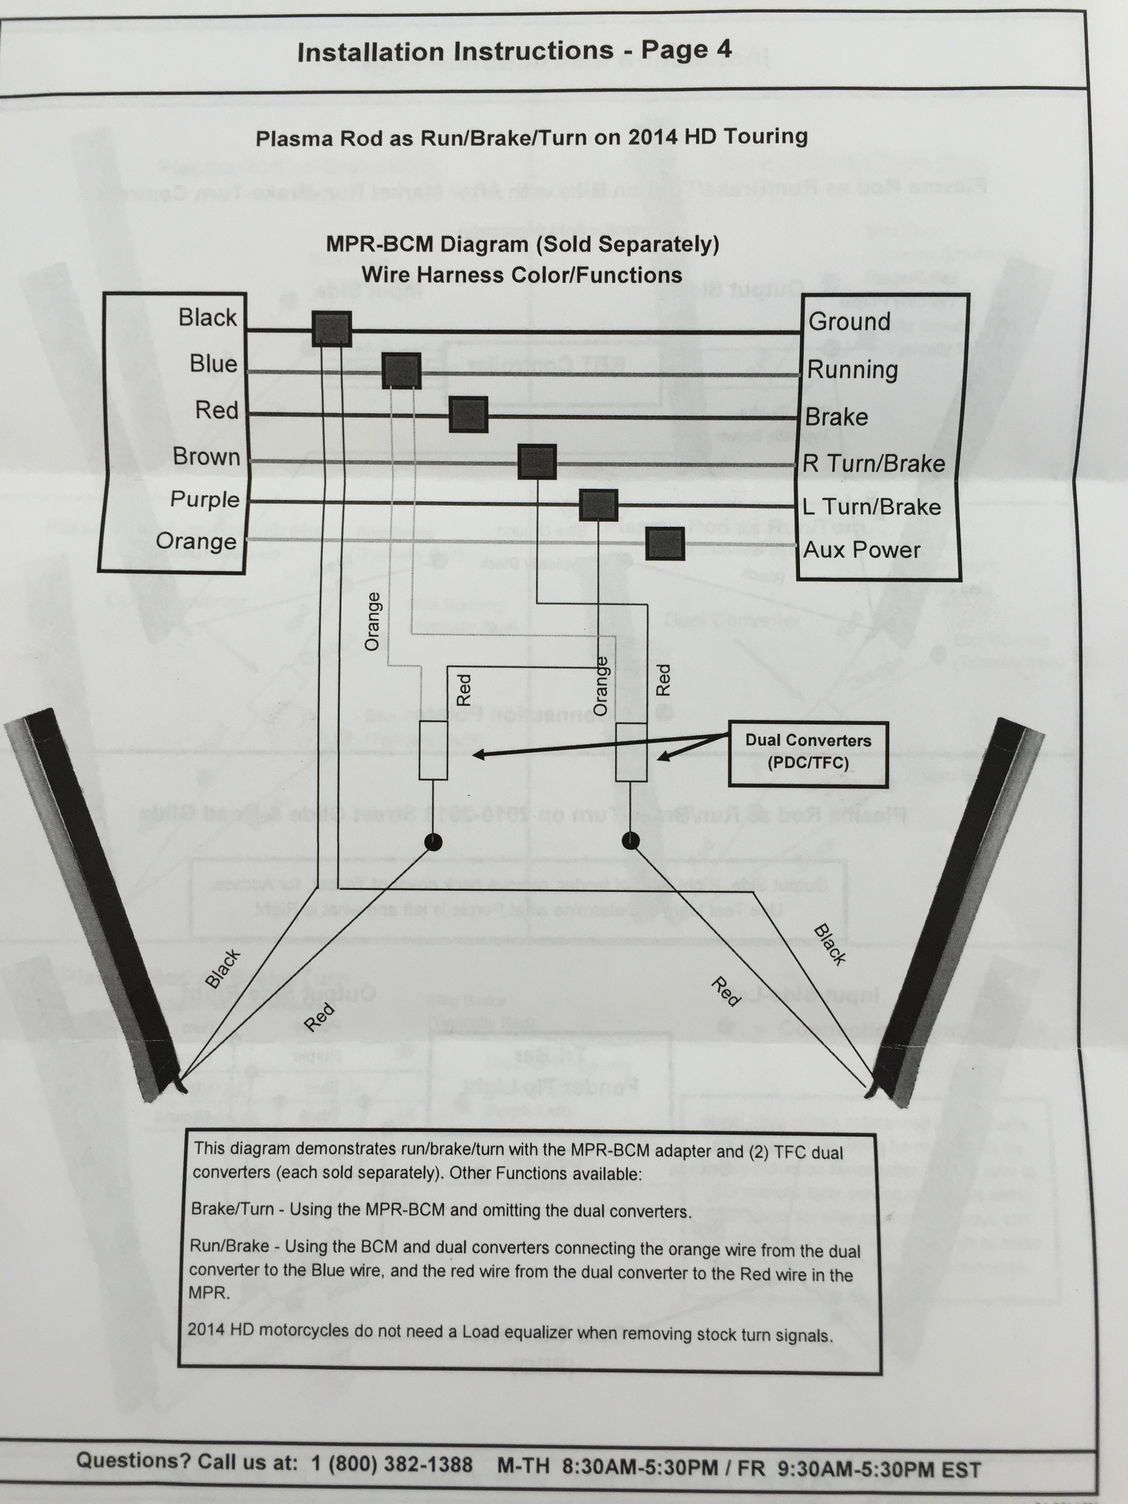 rv cable tv wiring diagram for trailer 7 pin plug fleetwood request 35